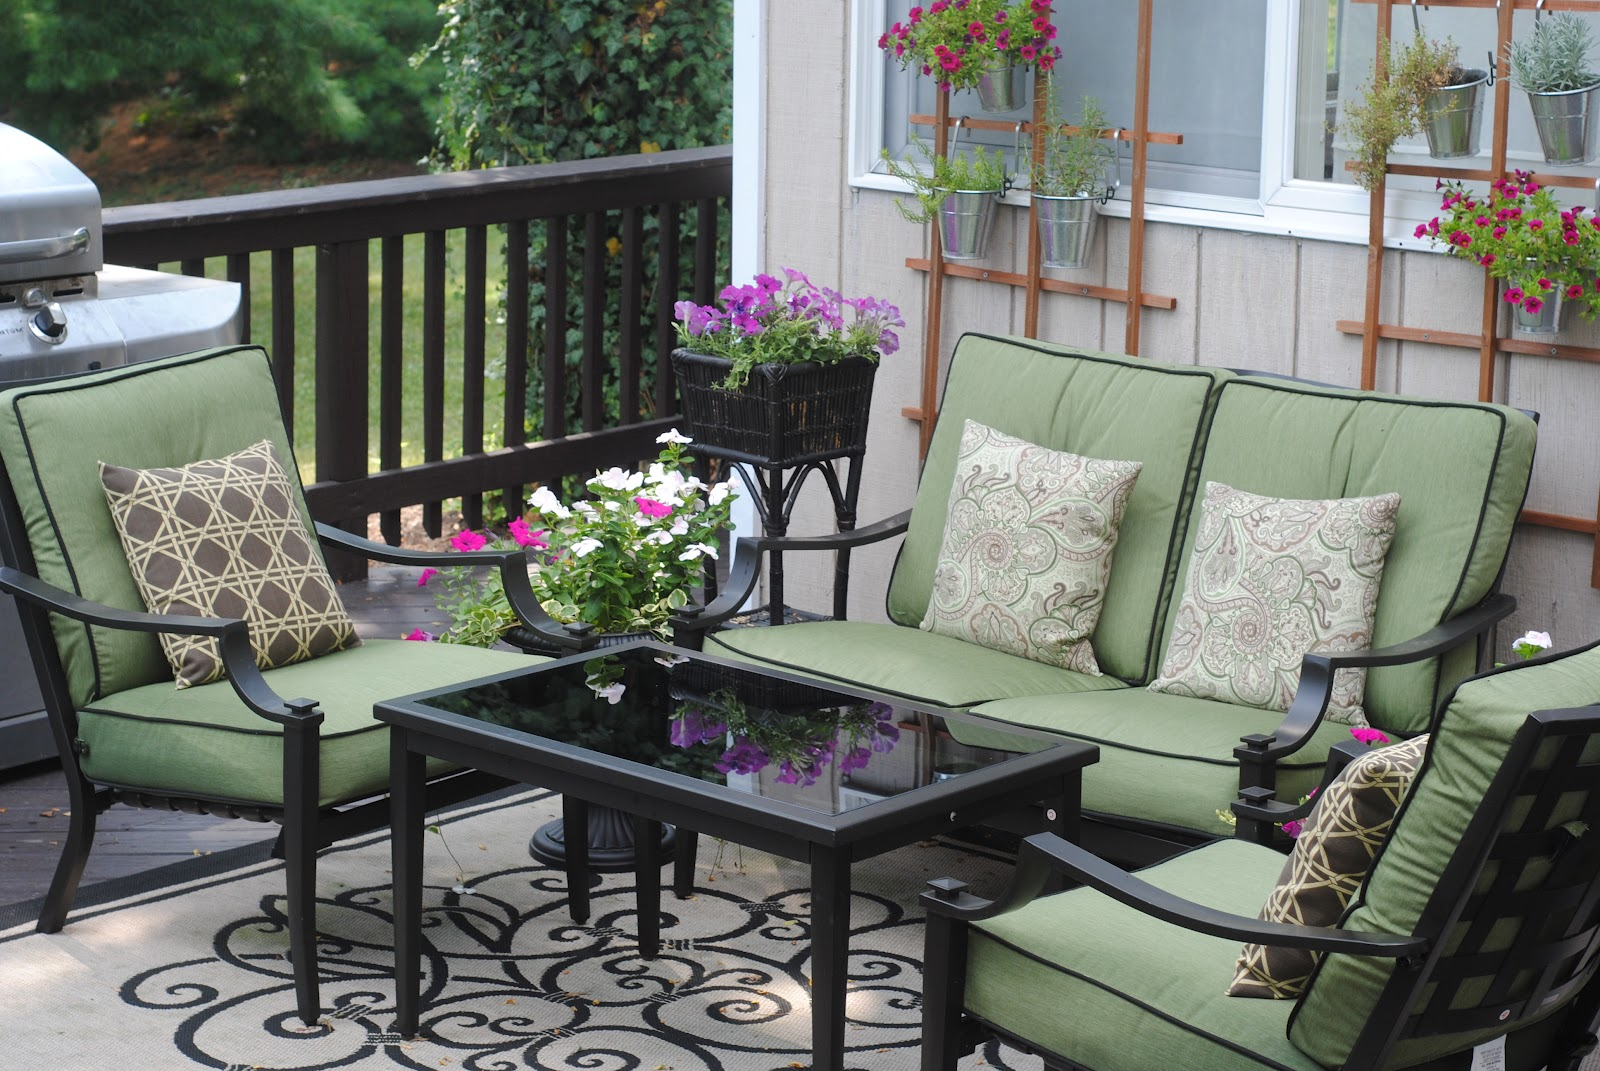 Refresh Your Nest Link Up: Garden And Outdoor Living Ideas | Making Lemonade